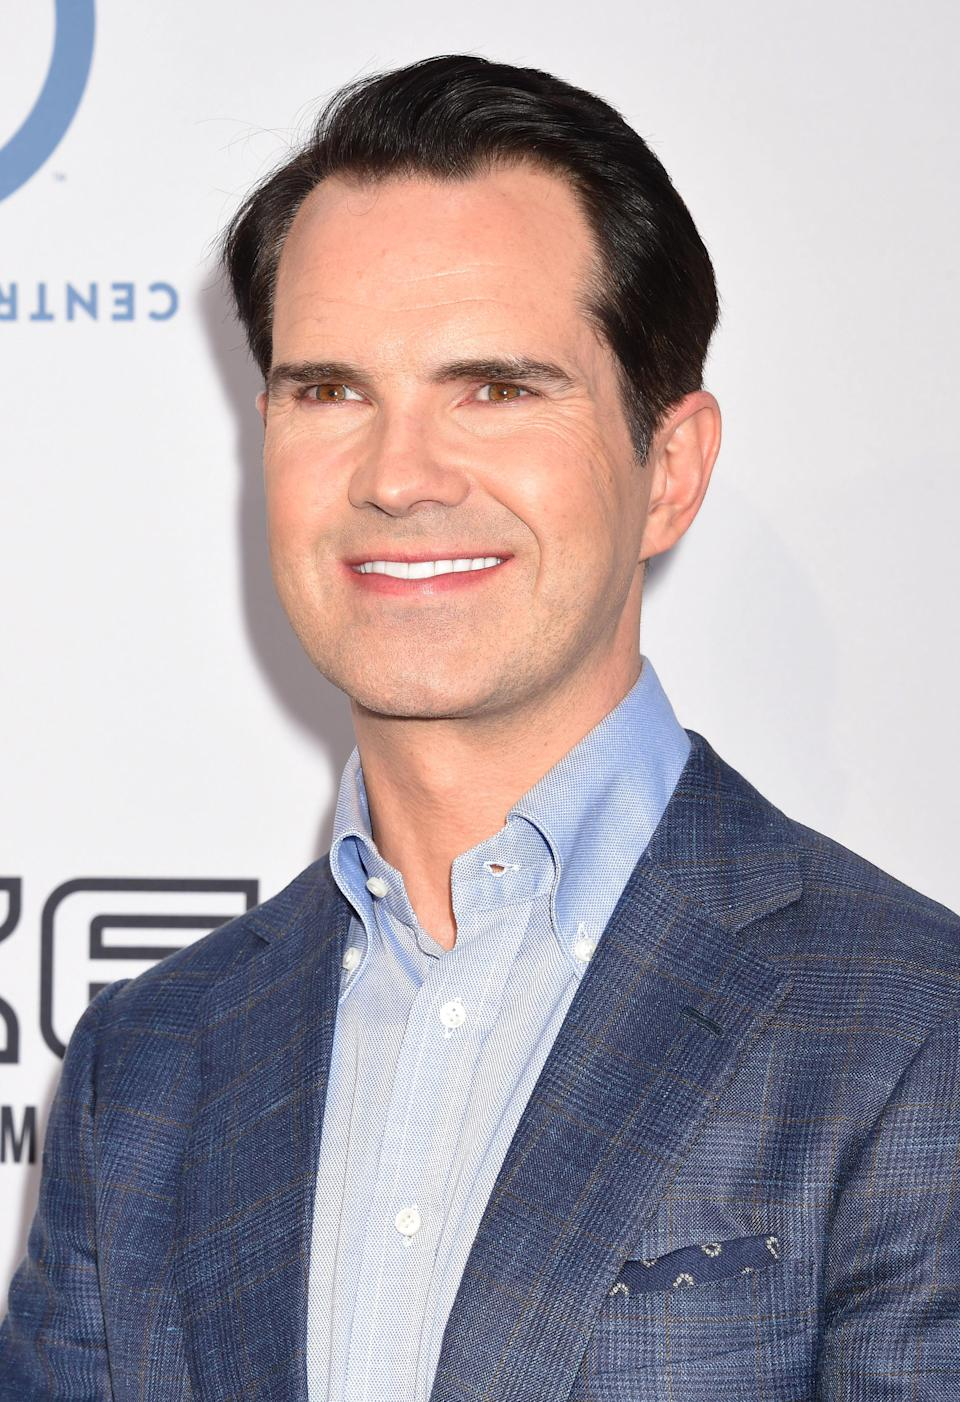 Comedian Jimmy Carr attends The Comedy Central Roast of Rob Lowe at Sony Studios on August 27, 2016 in Los Angeles, California. (Photo by Jeffrey Mayer/WireImage)